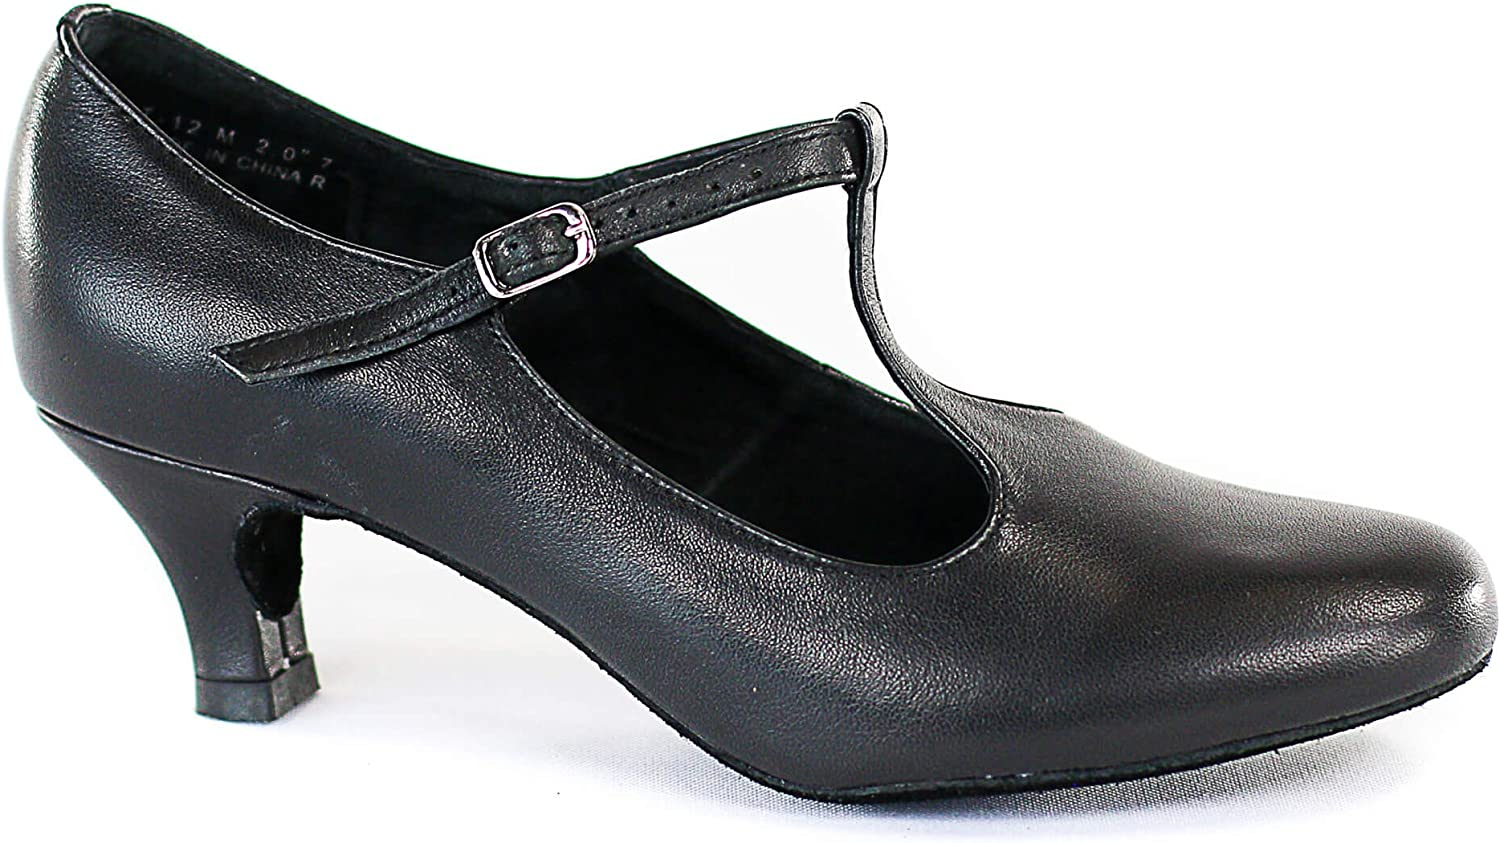 DiMichi Lena Leather Insole Heel 2 Inches Ballroom Shoes